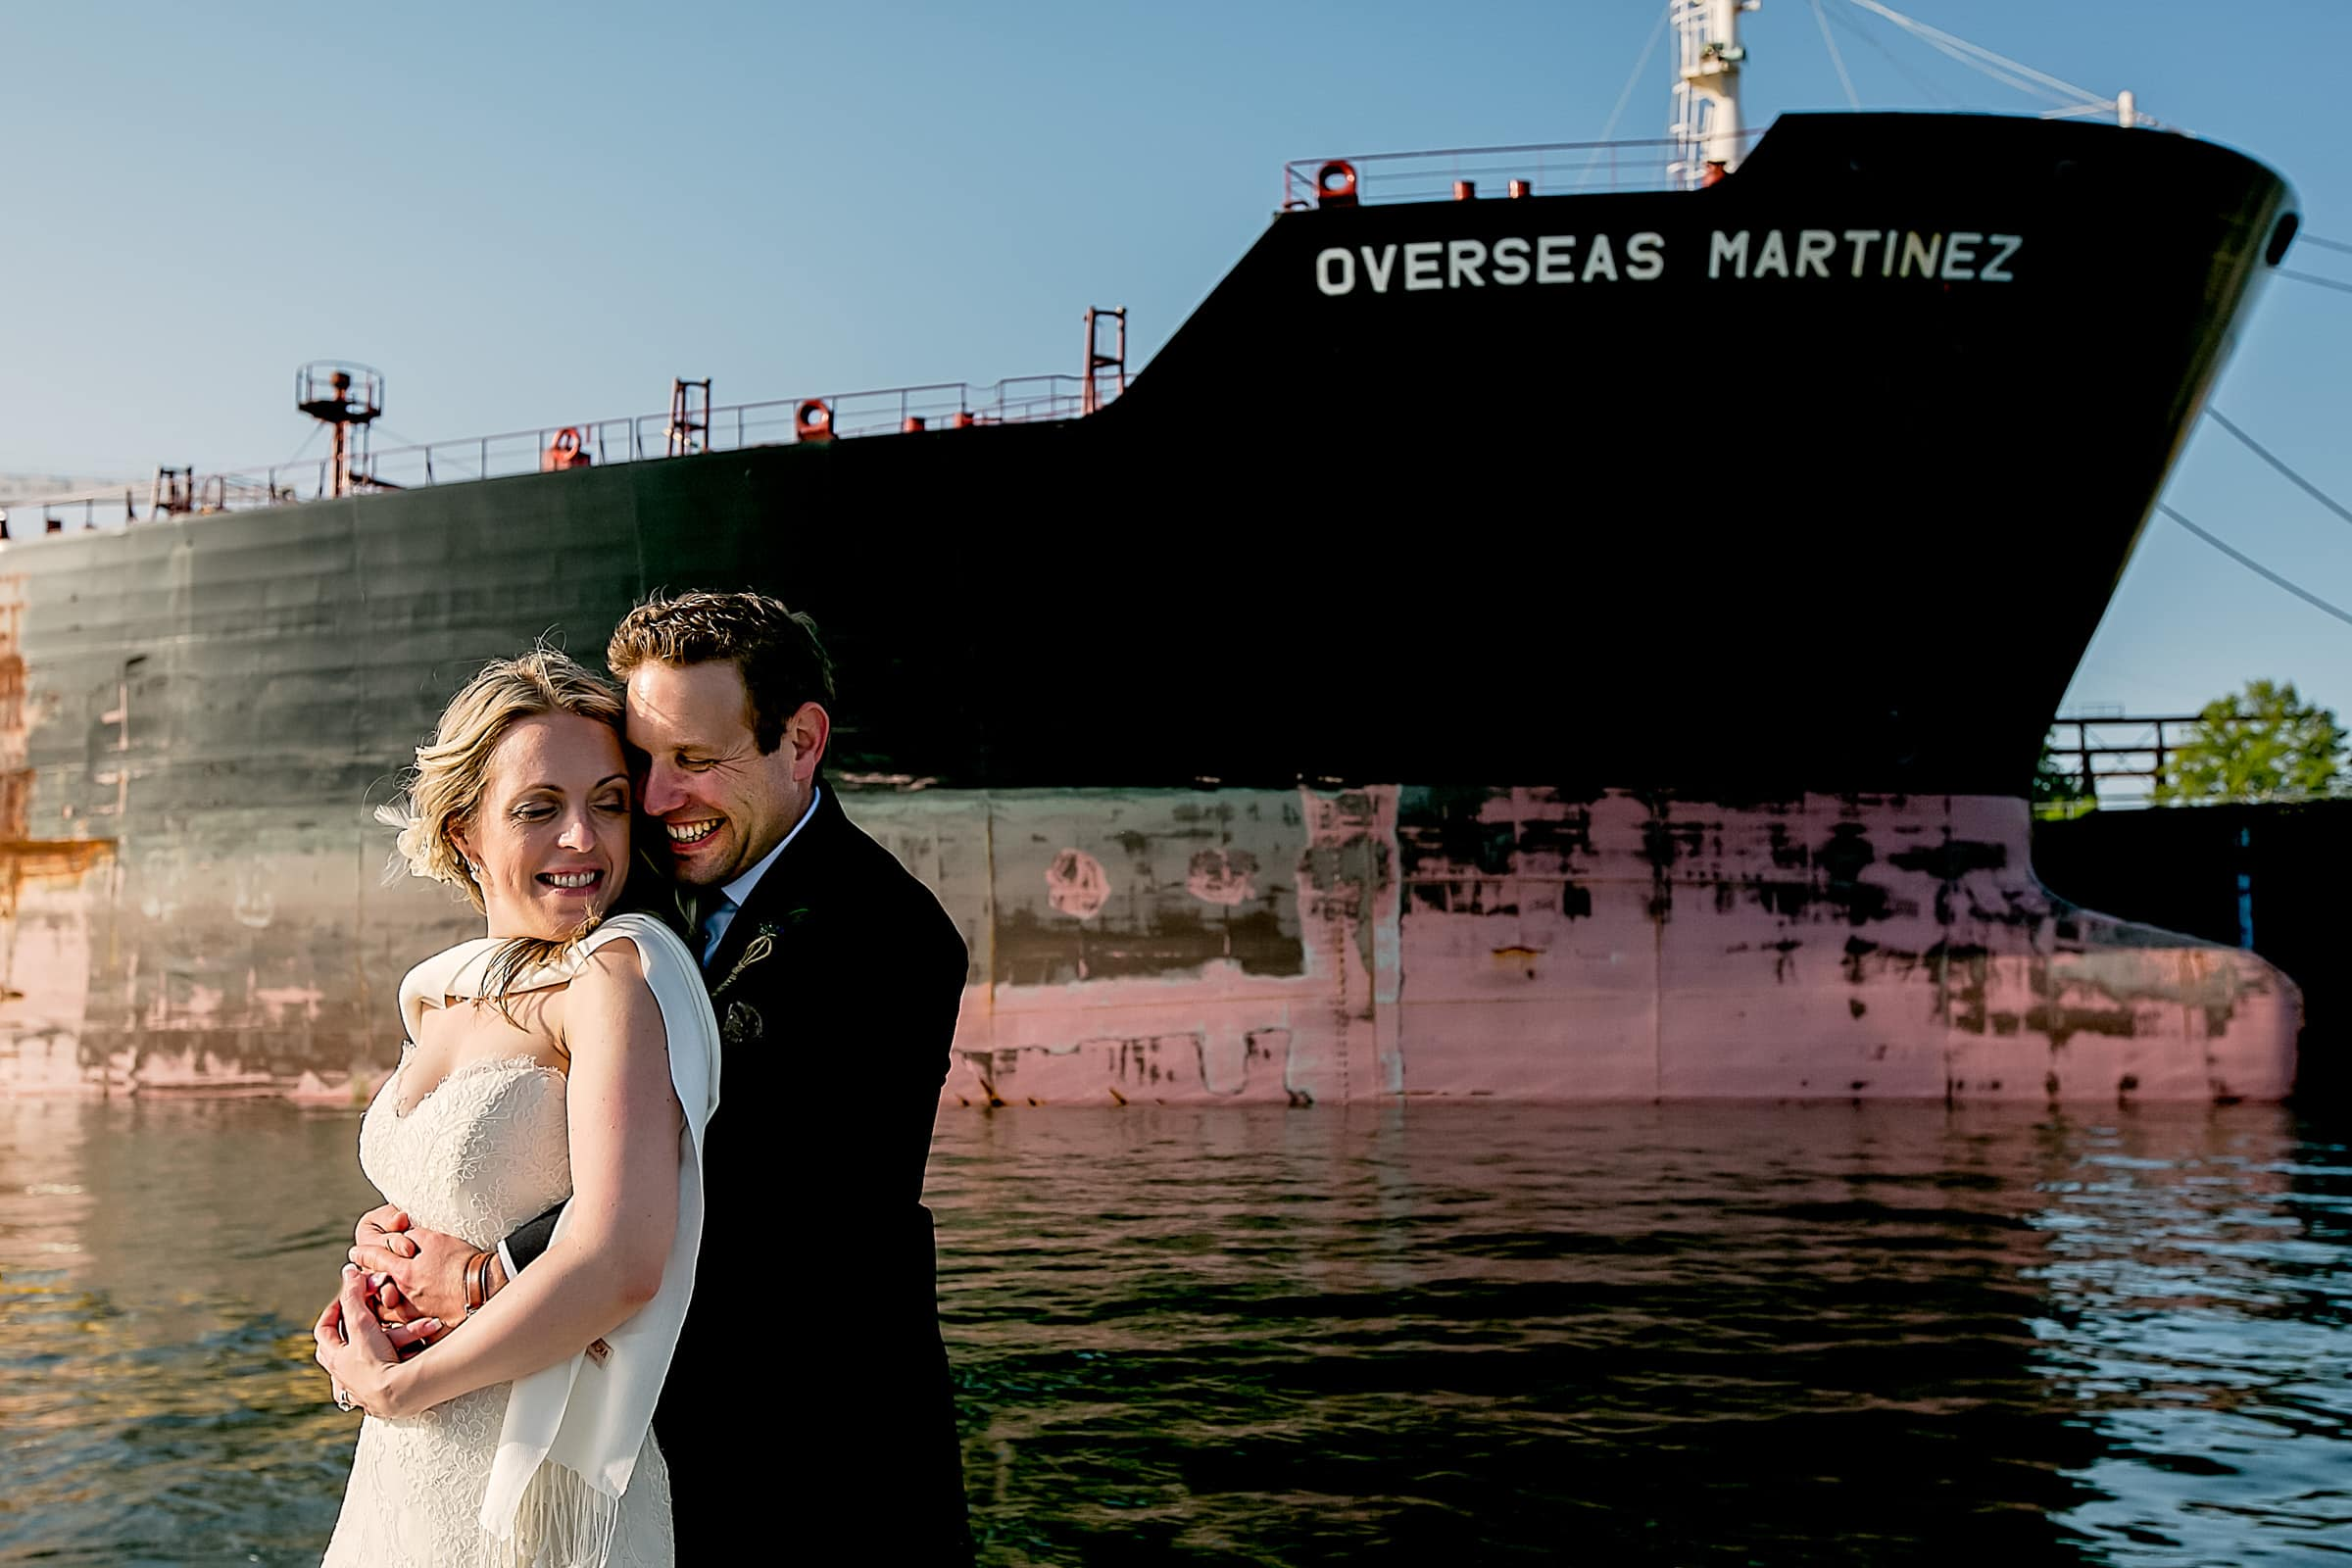 Bride and groom portrait near the Overseas Martinez ship moments after their outdoor small Cathedral Park Wedding ceremony in Portland Oregon